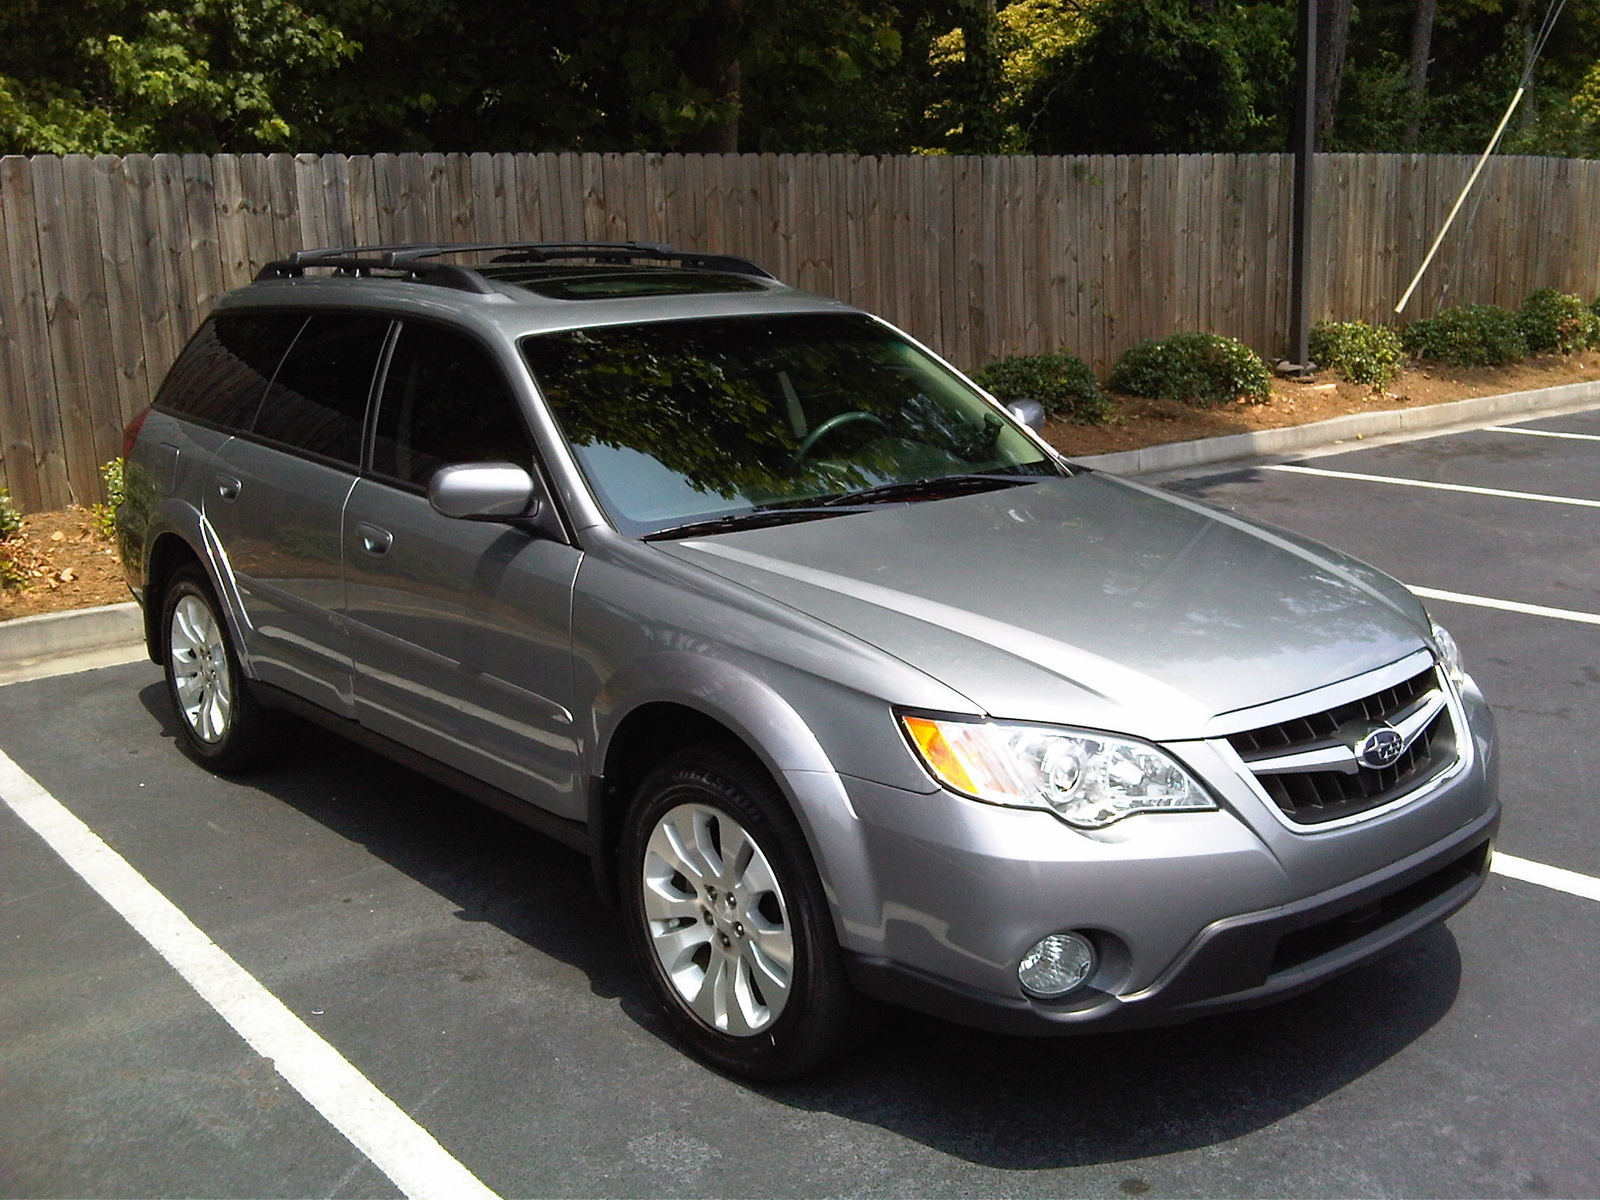 2009 Subaru Forester - User Reviews - CarGurus